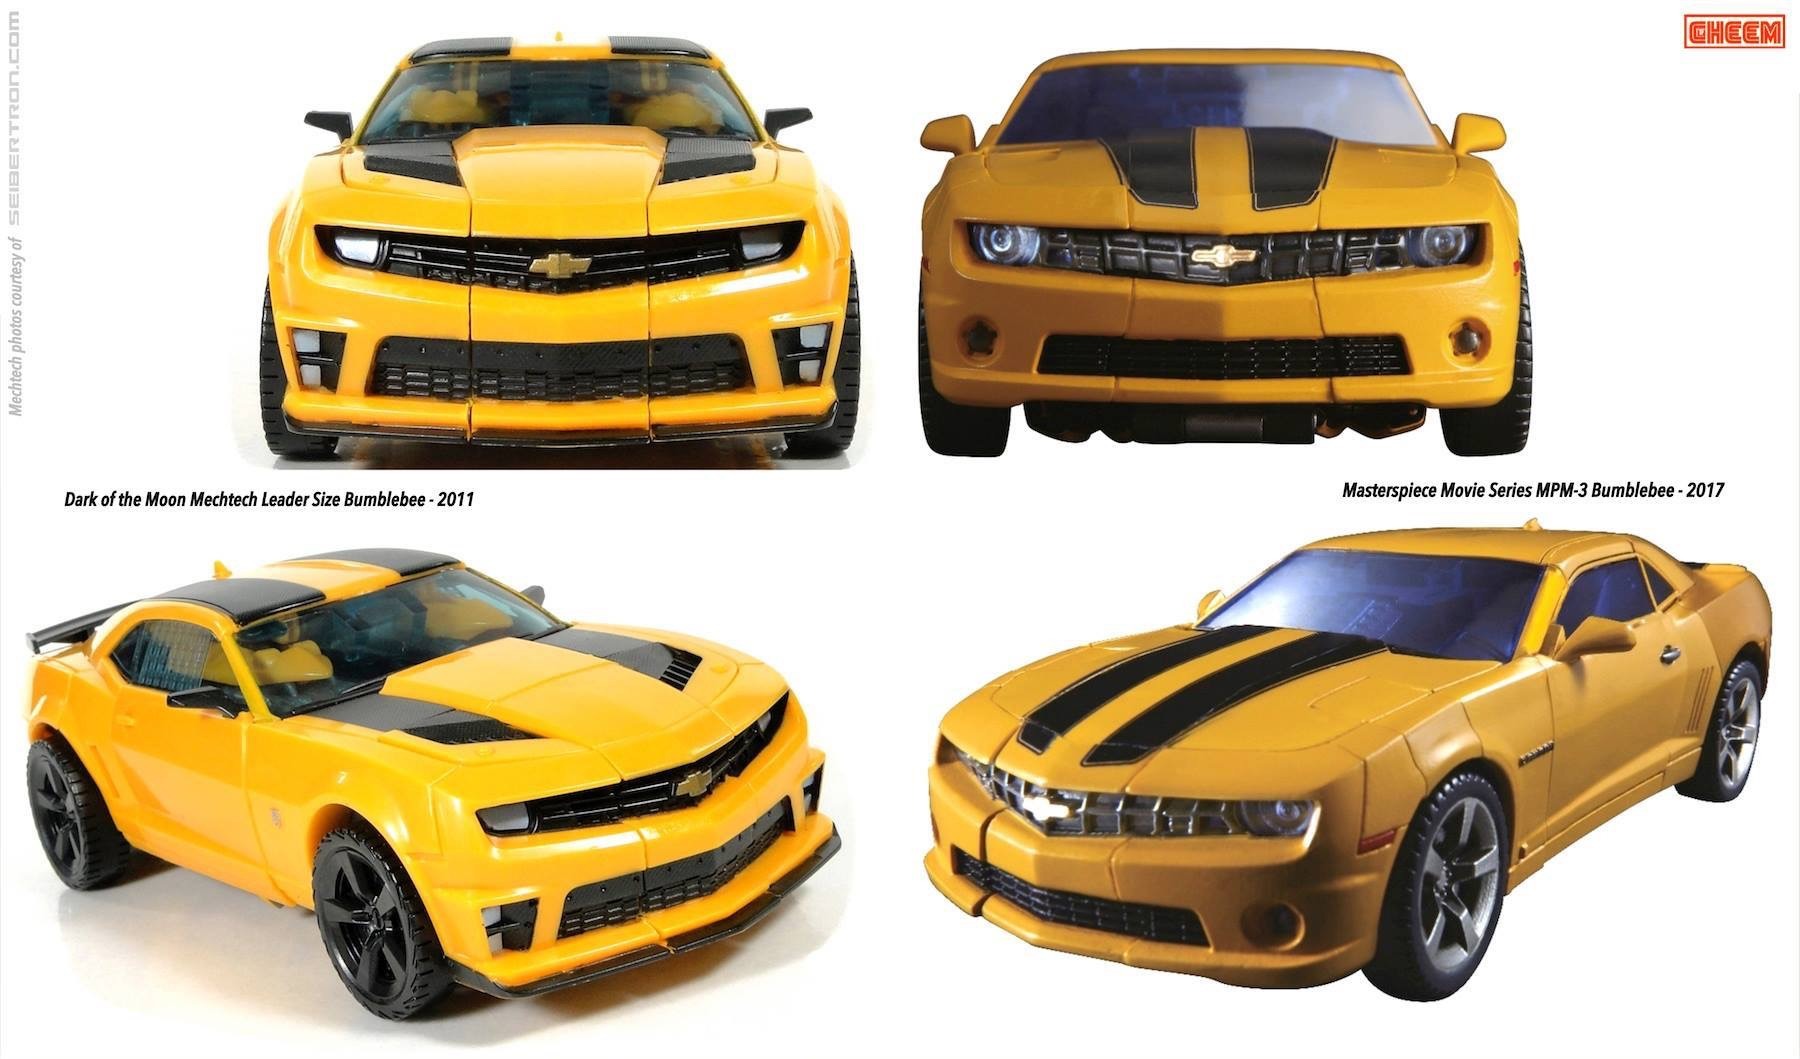 MPM3-masterpiece-movie-bumblebee-comparison-vehicle-car